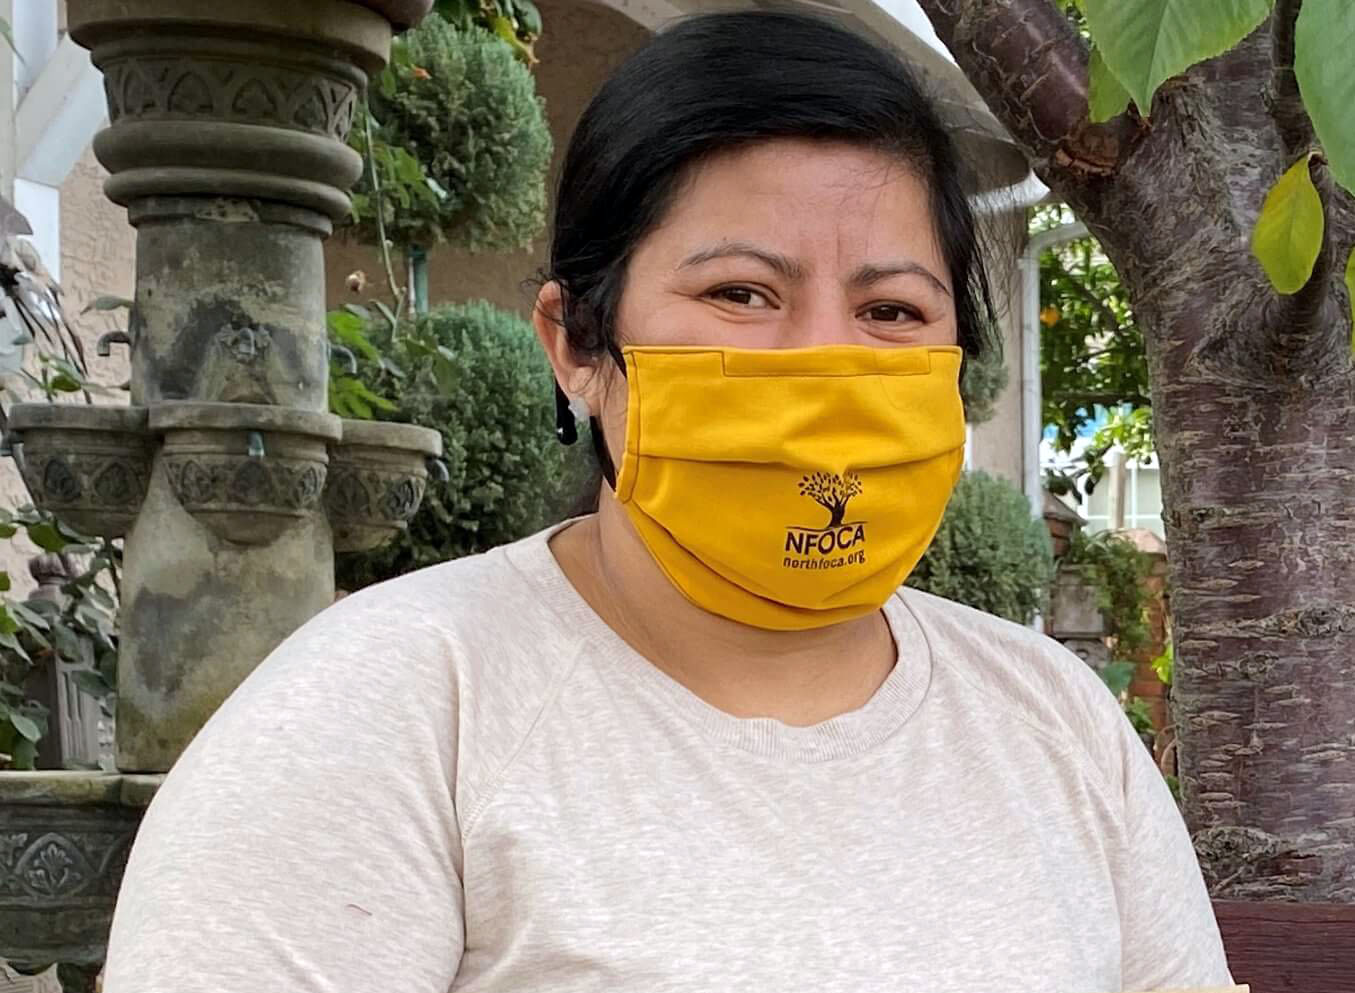 A woman in a tan shirt wears a yellow face mask and holds a brown bag with the NFOCA logo.